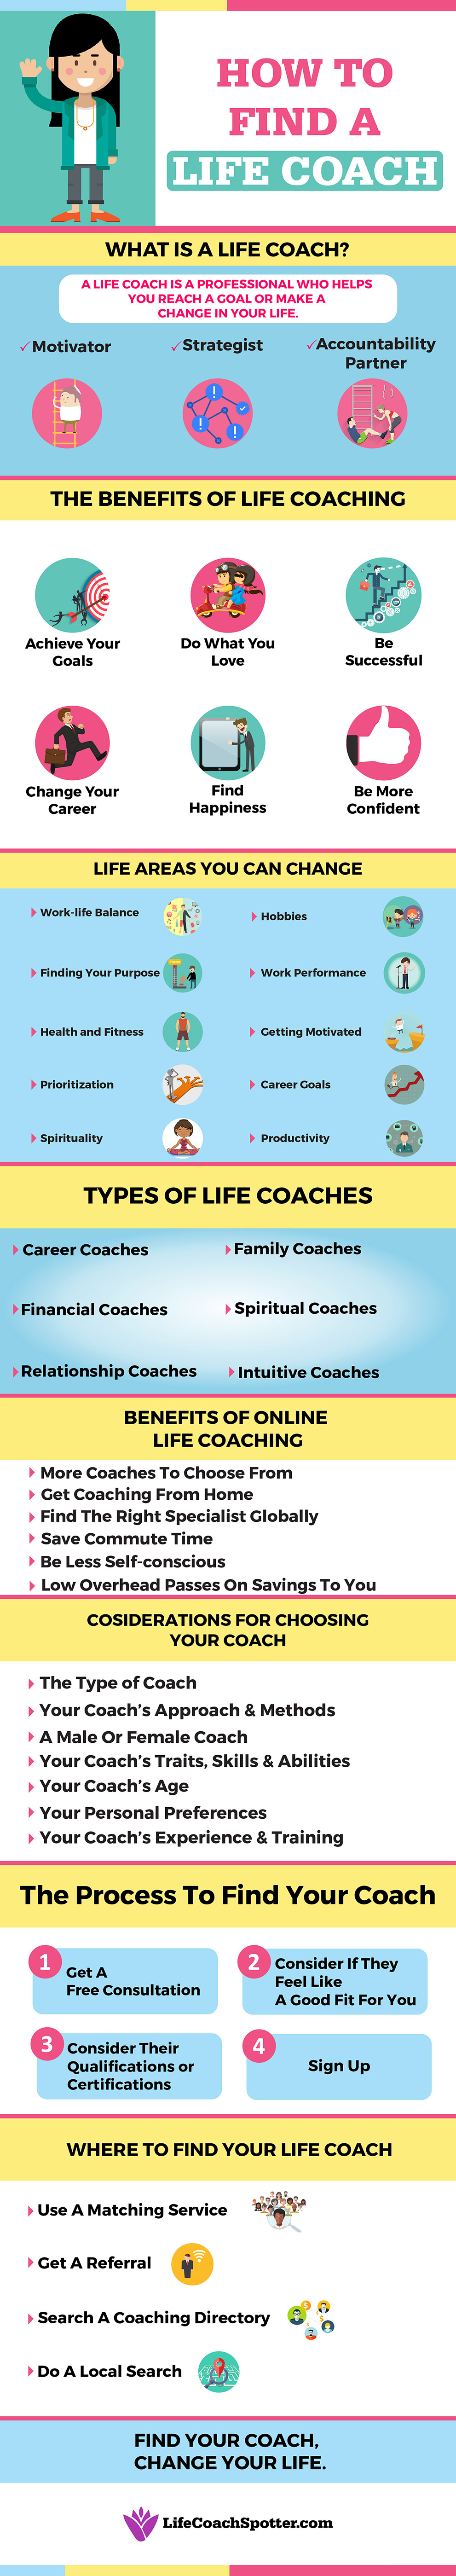 coaching infographic 1.cdr